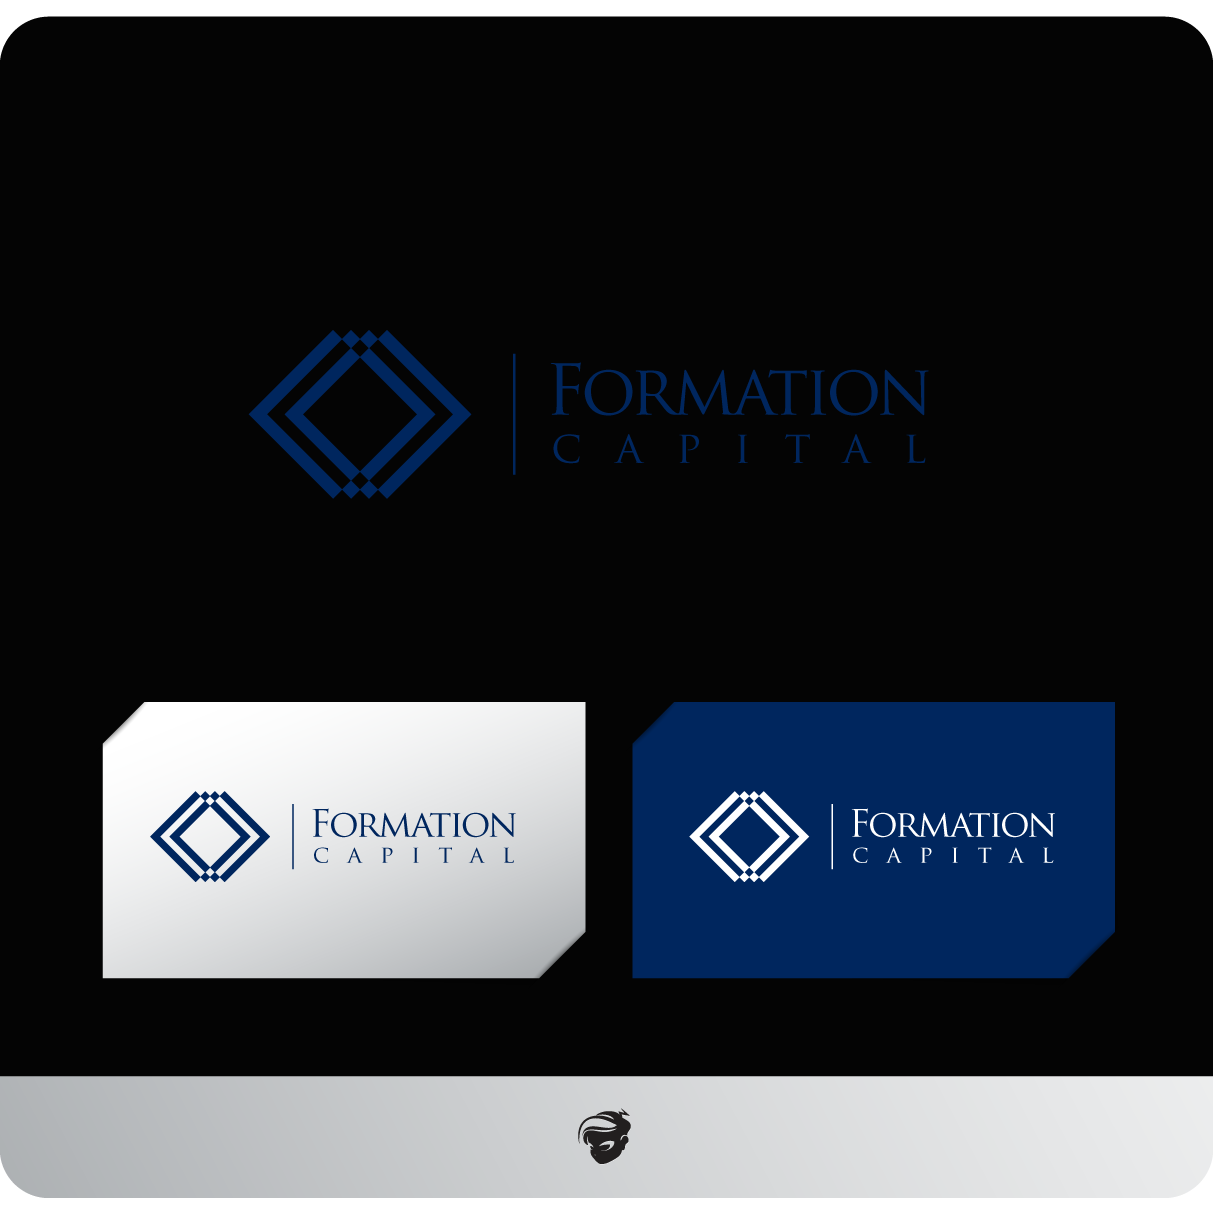 Logo Design by zesthar - Entry No. 231 in the Logo Design Contest Inspiring Logo Design for Formation Capital.